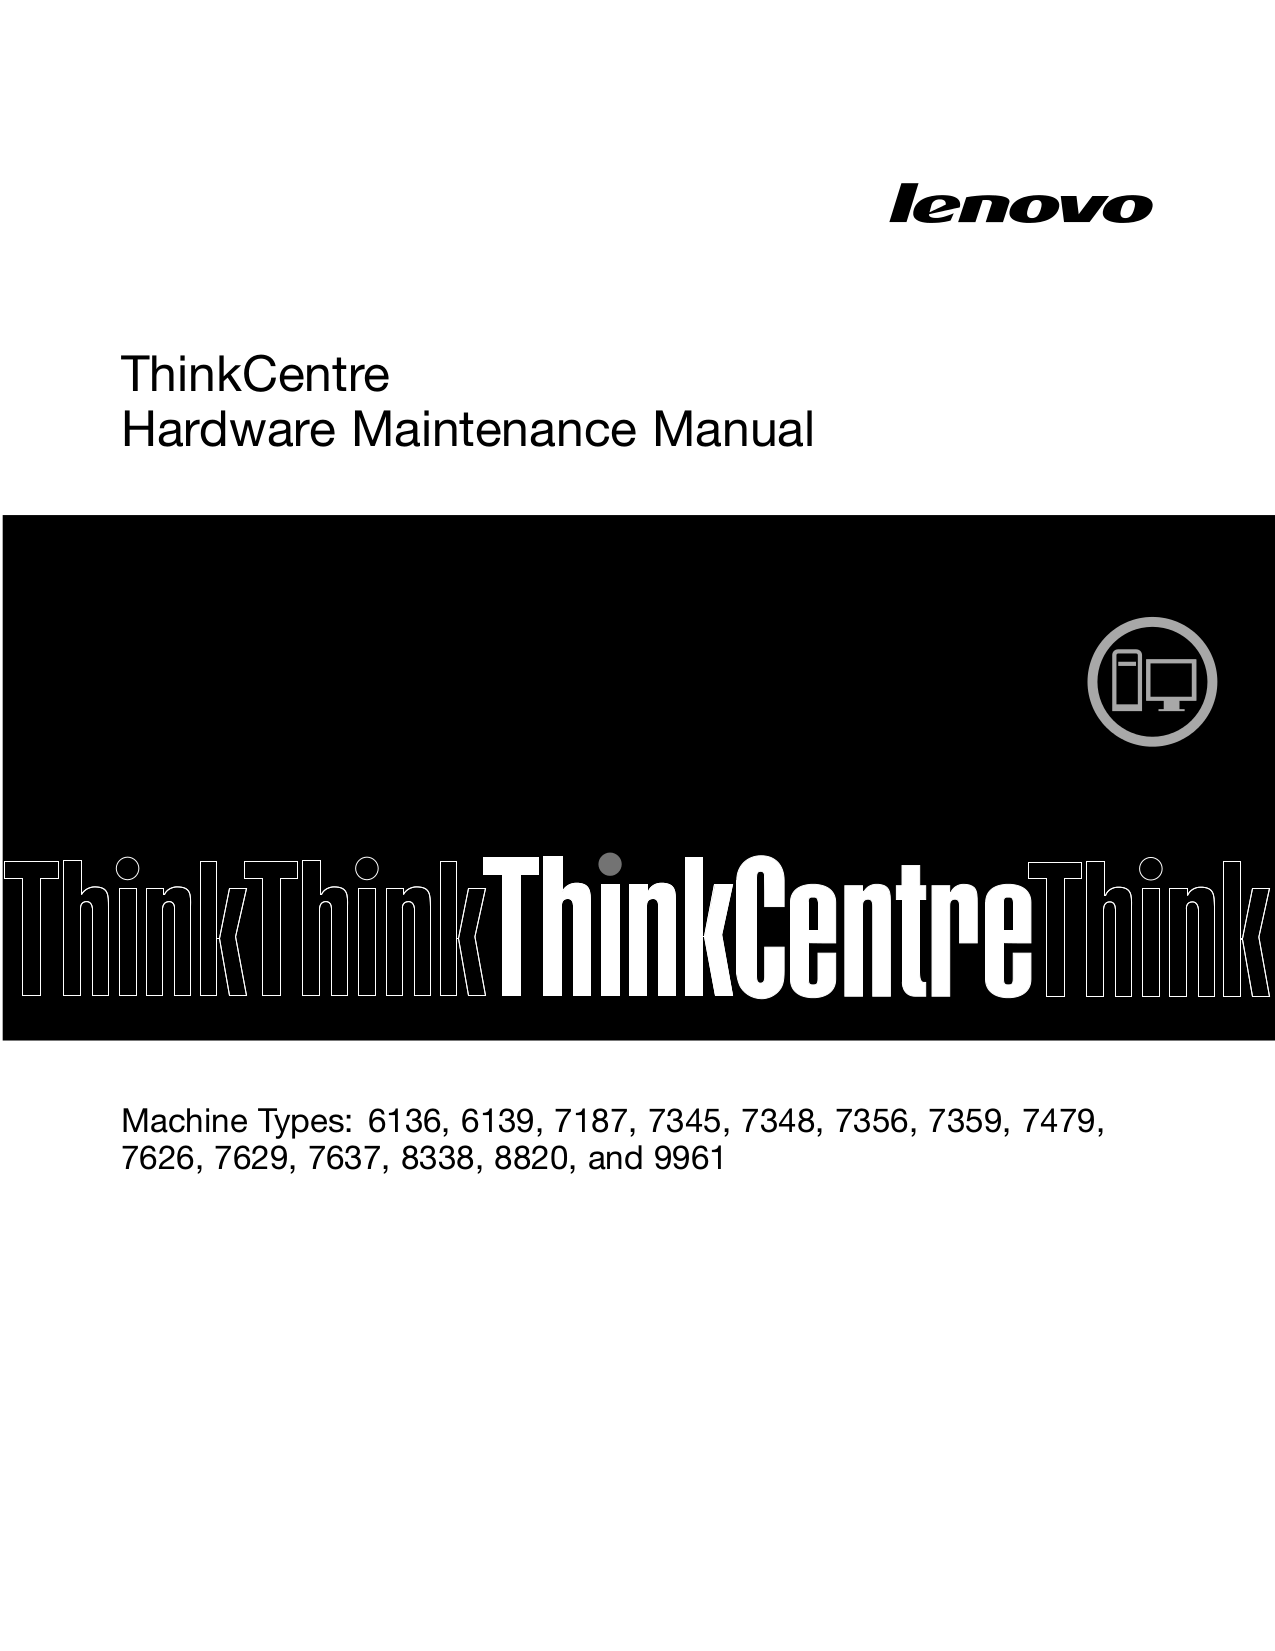 pdf for Lenovo Desktop ThinkCentre M58p 7629 manual